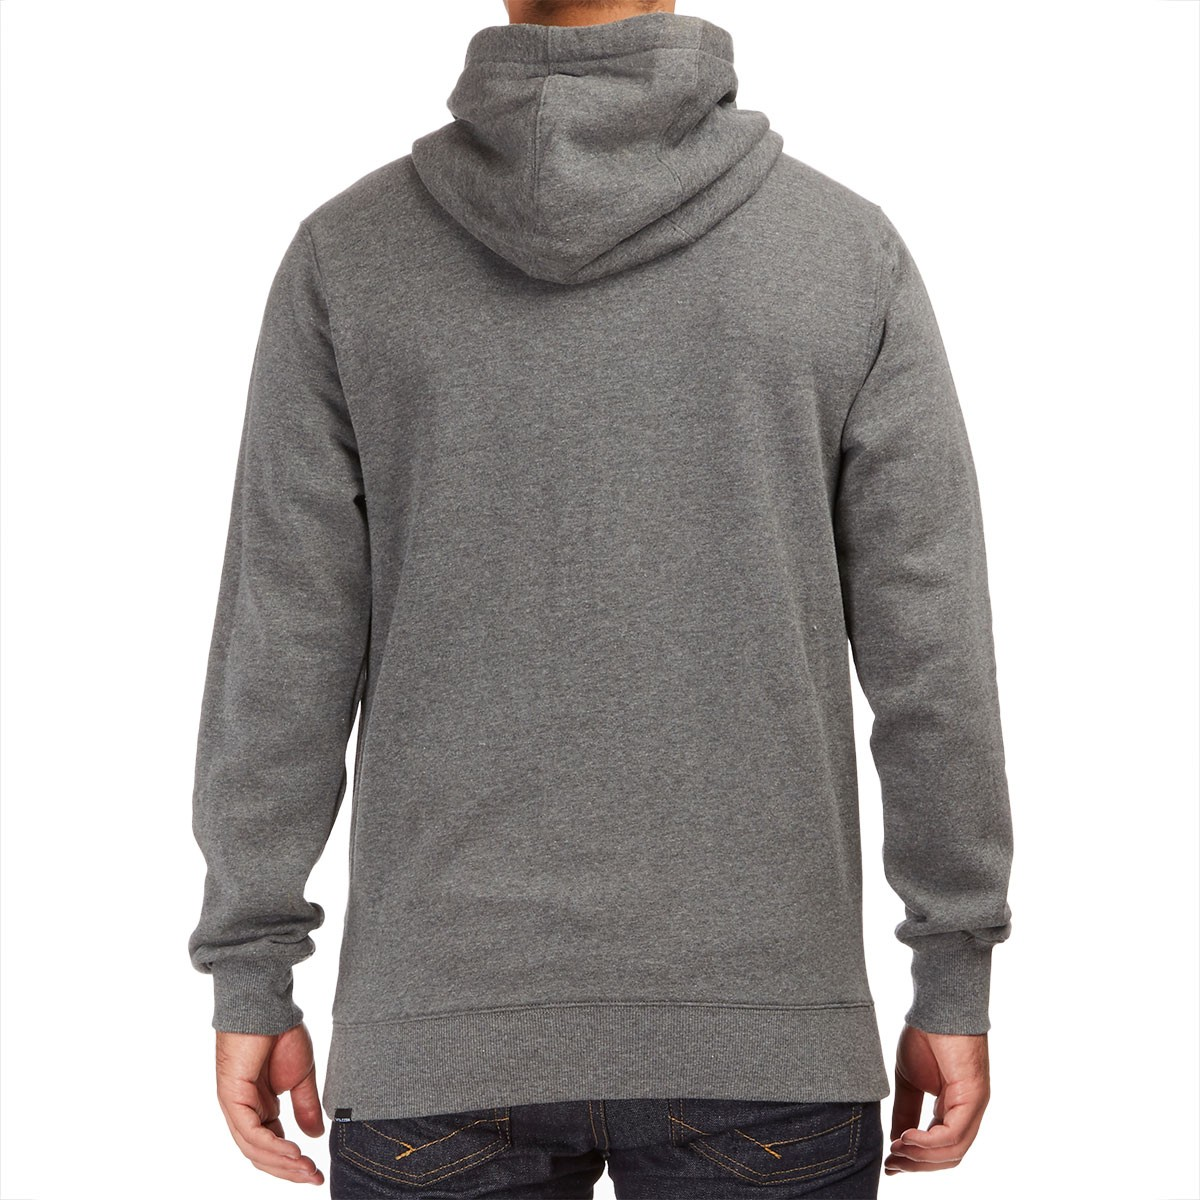 Single Stone Zip Hoodie - Dark Grey